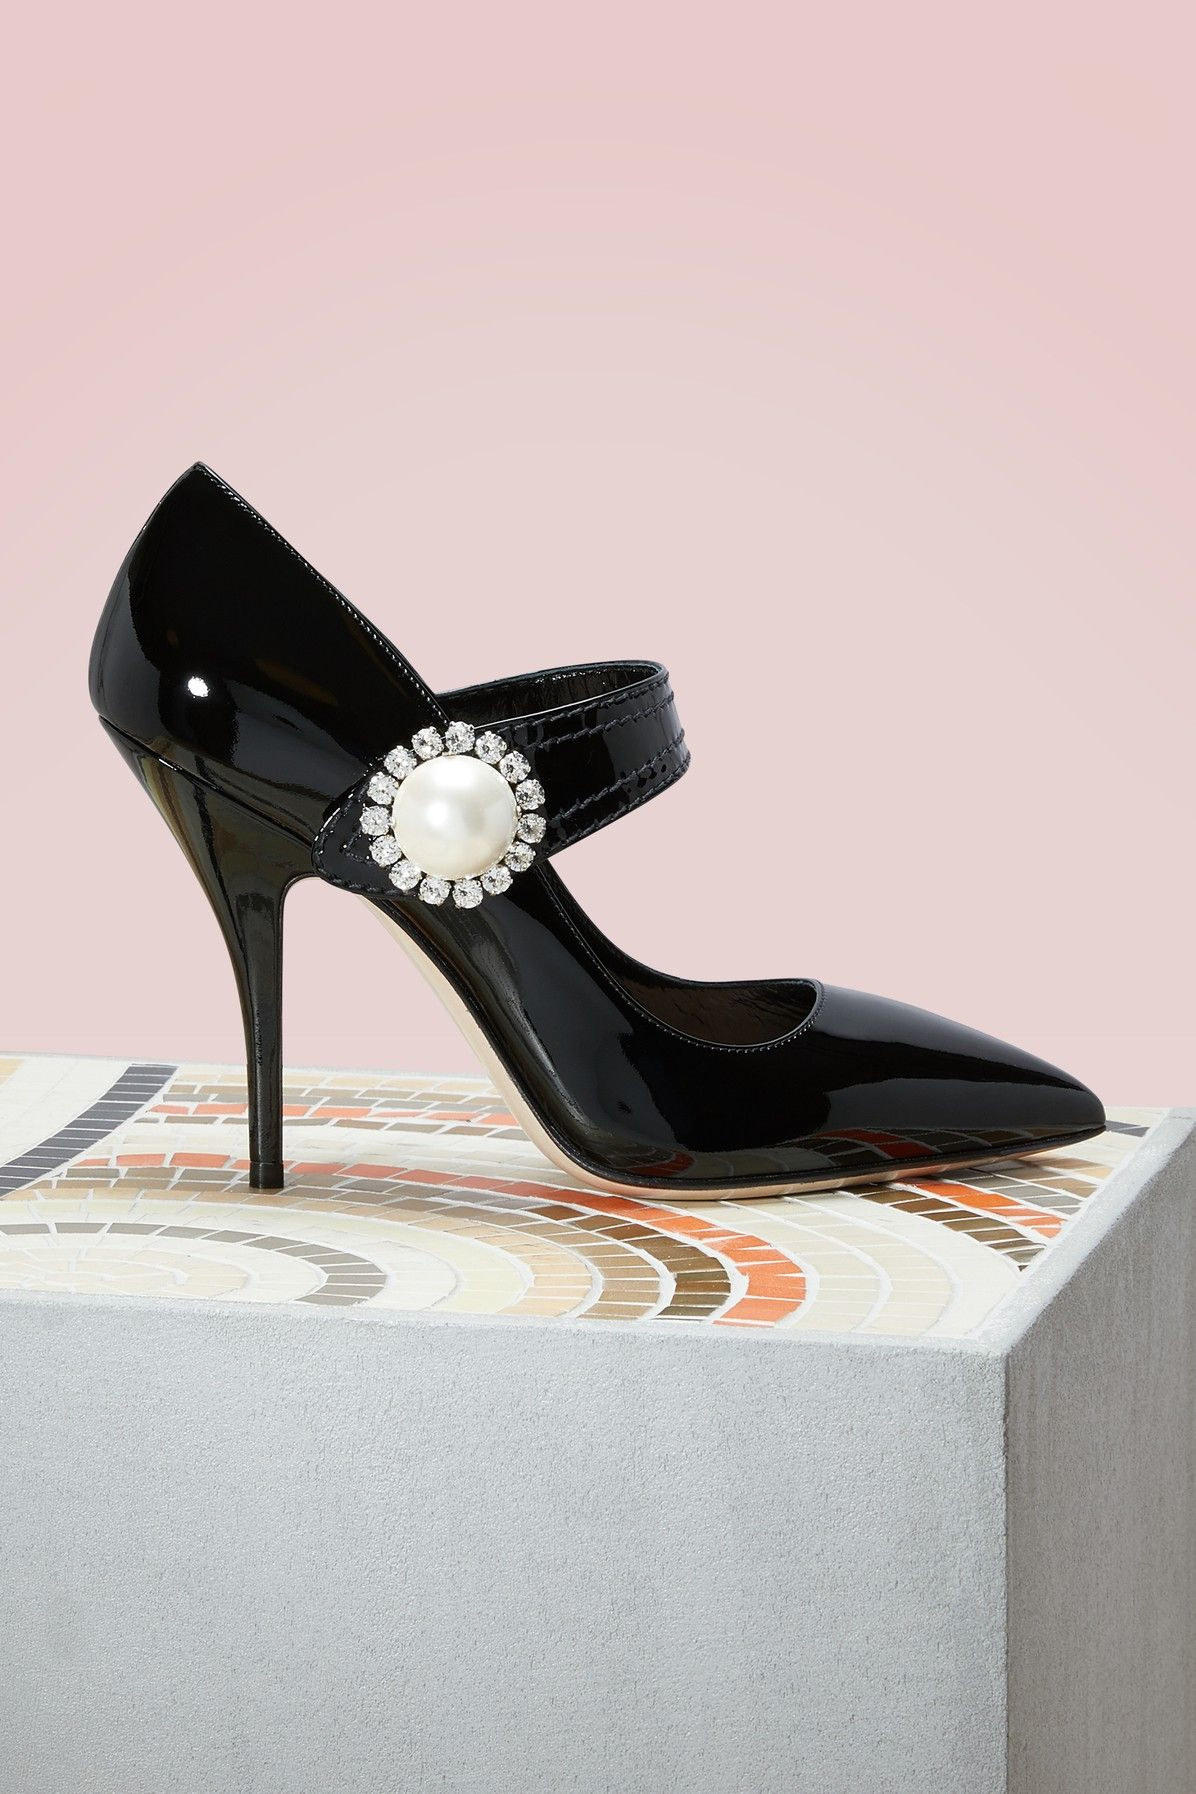 6ea647c6d63a MIU MIU Pearl leather pumps.  miumiu  shoes